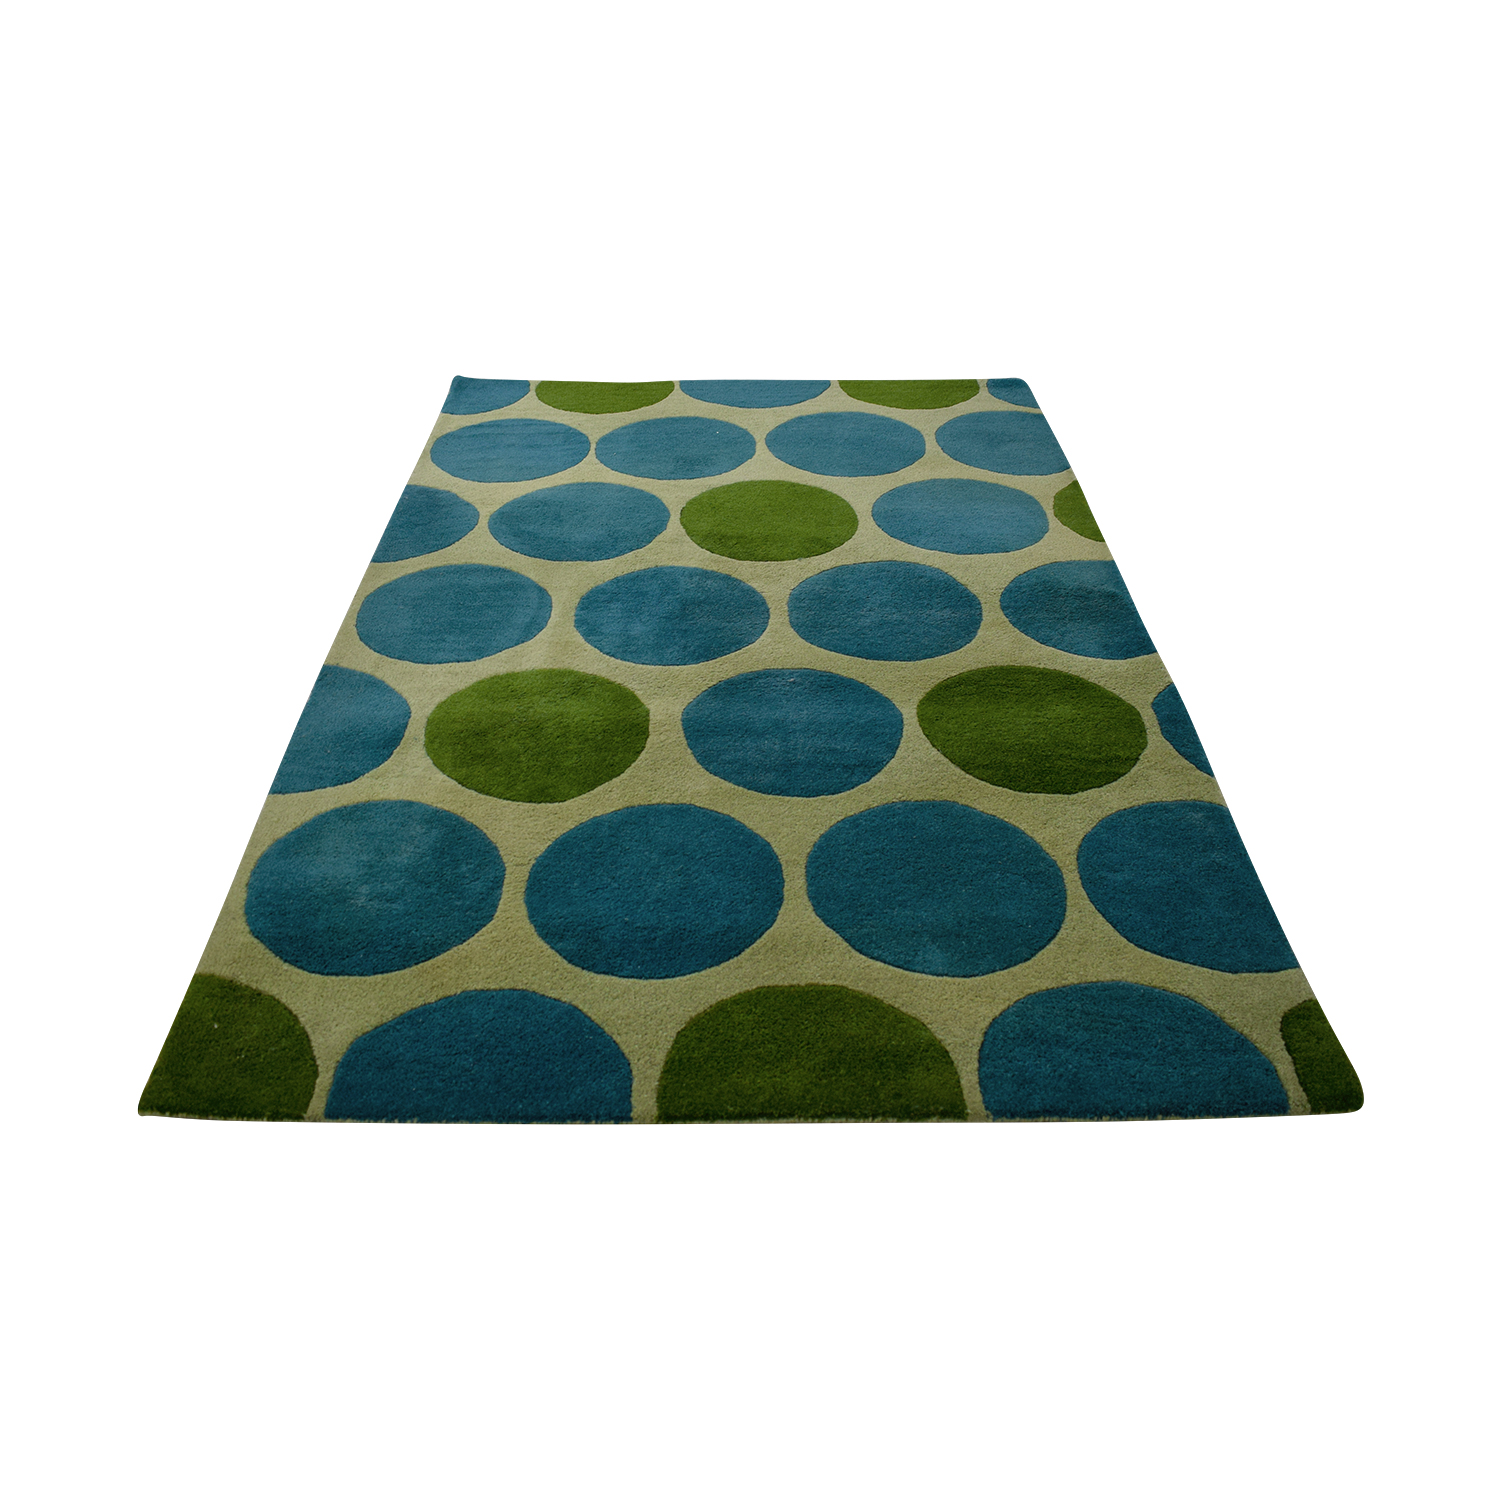 Horizon Horizon Green and Turquoise Circle Rug coupon